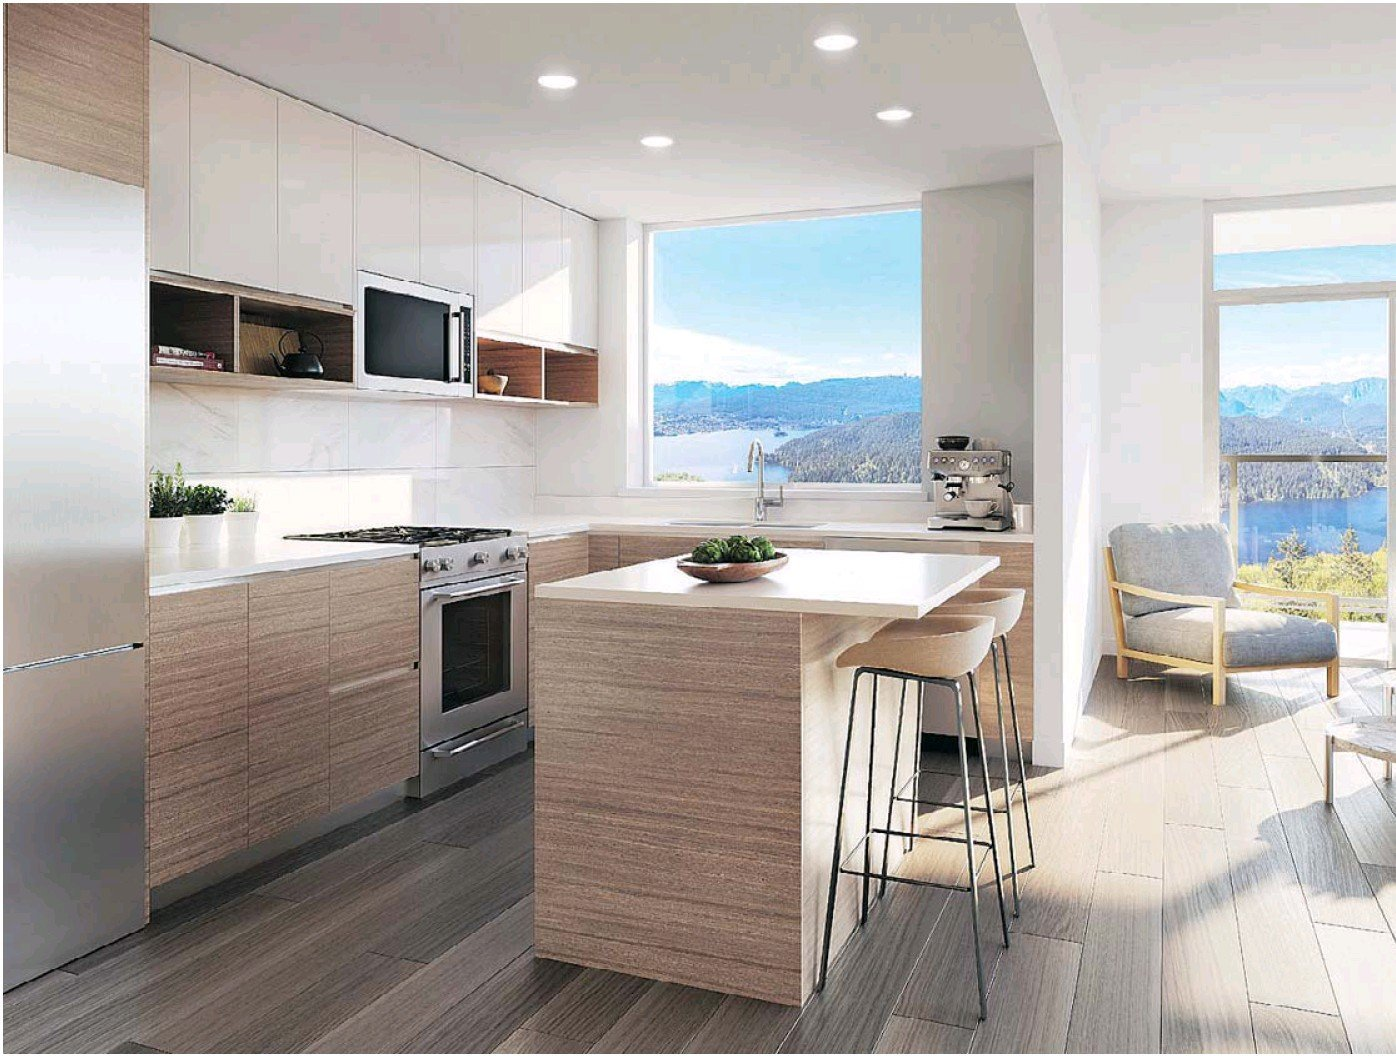 Rendering of Kitchen Space!